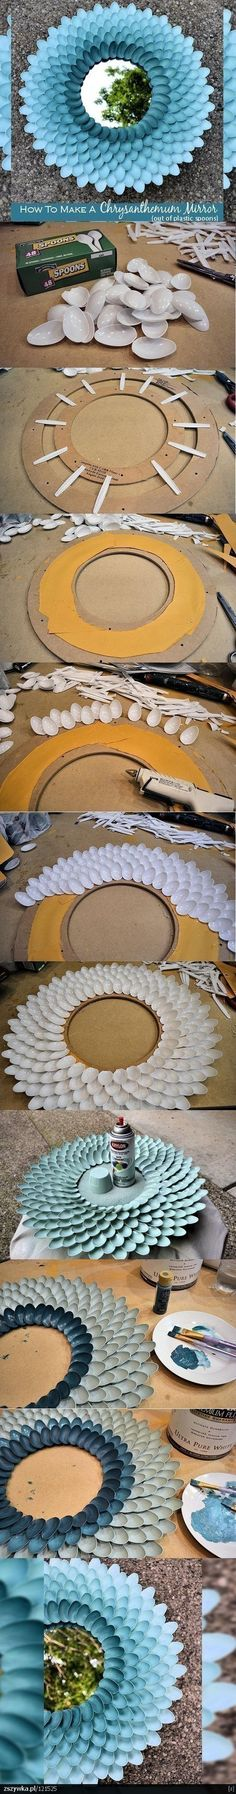 DIY pretty mirror or I am thinking of using this idea for the topper of my bird bath. Wow made out of plastic spoons what!?!